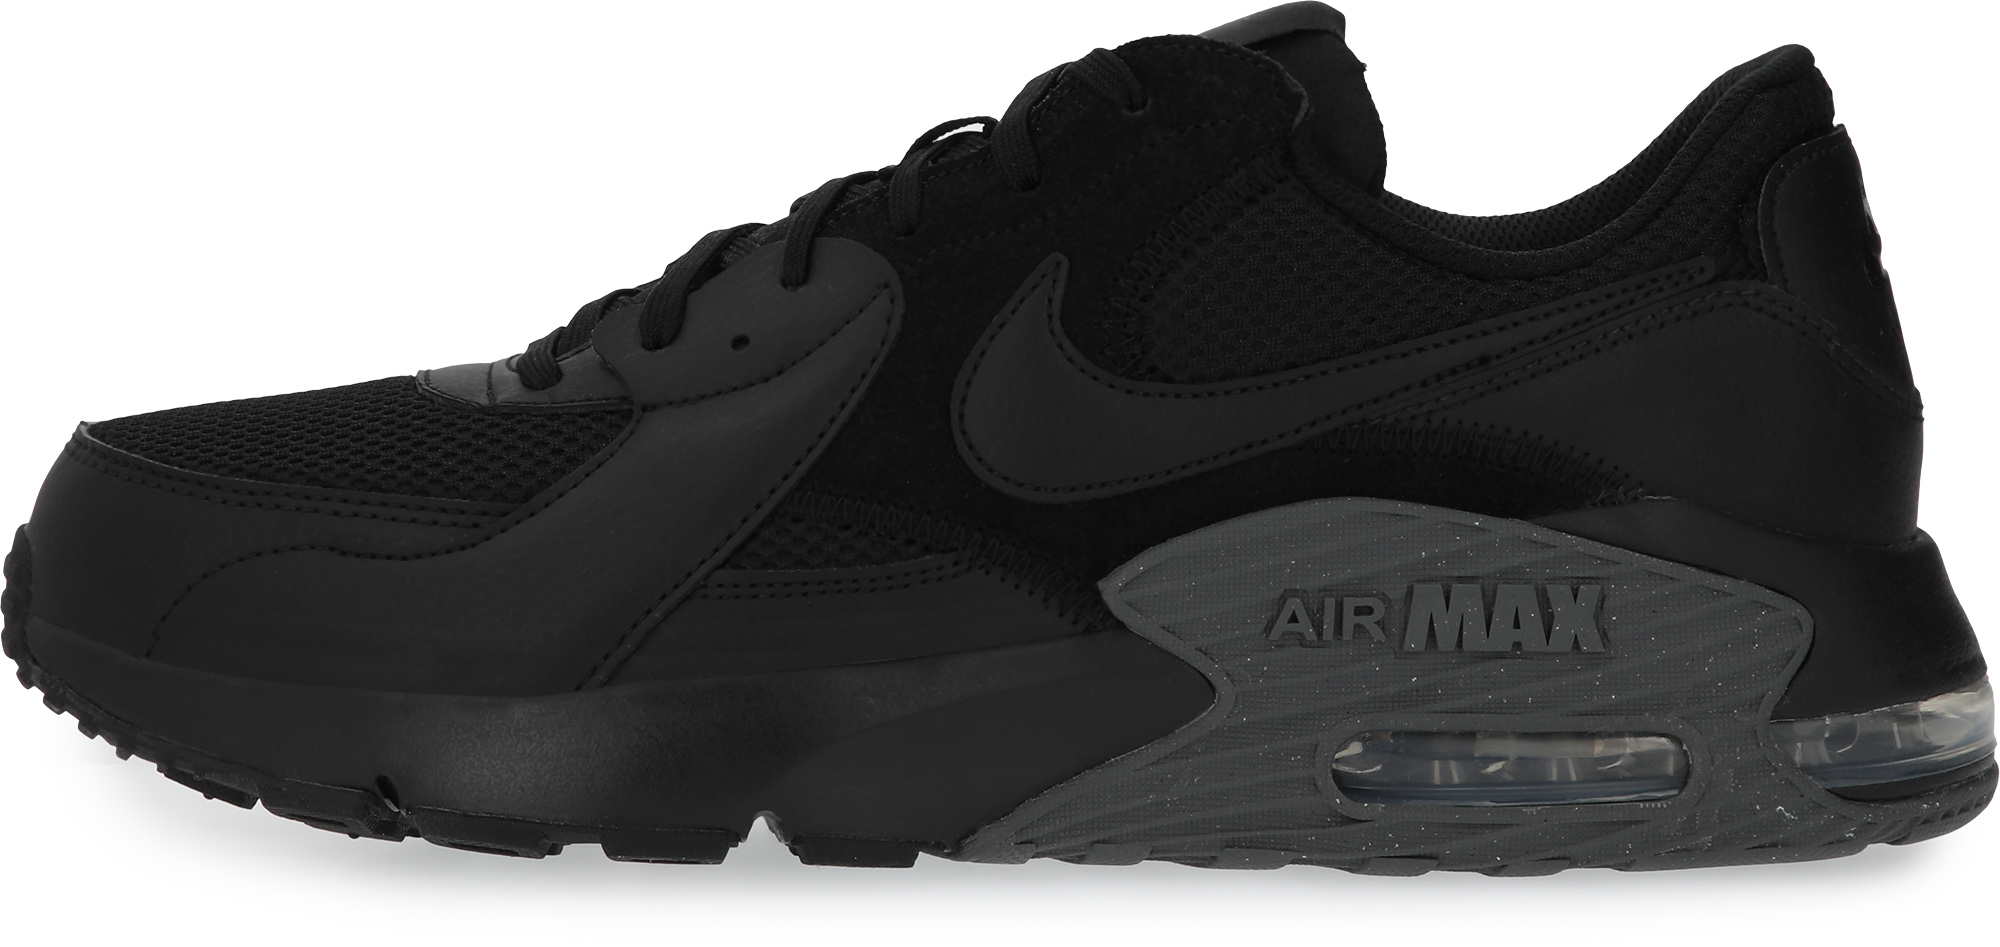 Nike Кроссовки мужские Nike Air Max Excee, размер 45 кроссовки nike nike ni464abbdqe1